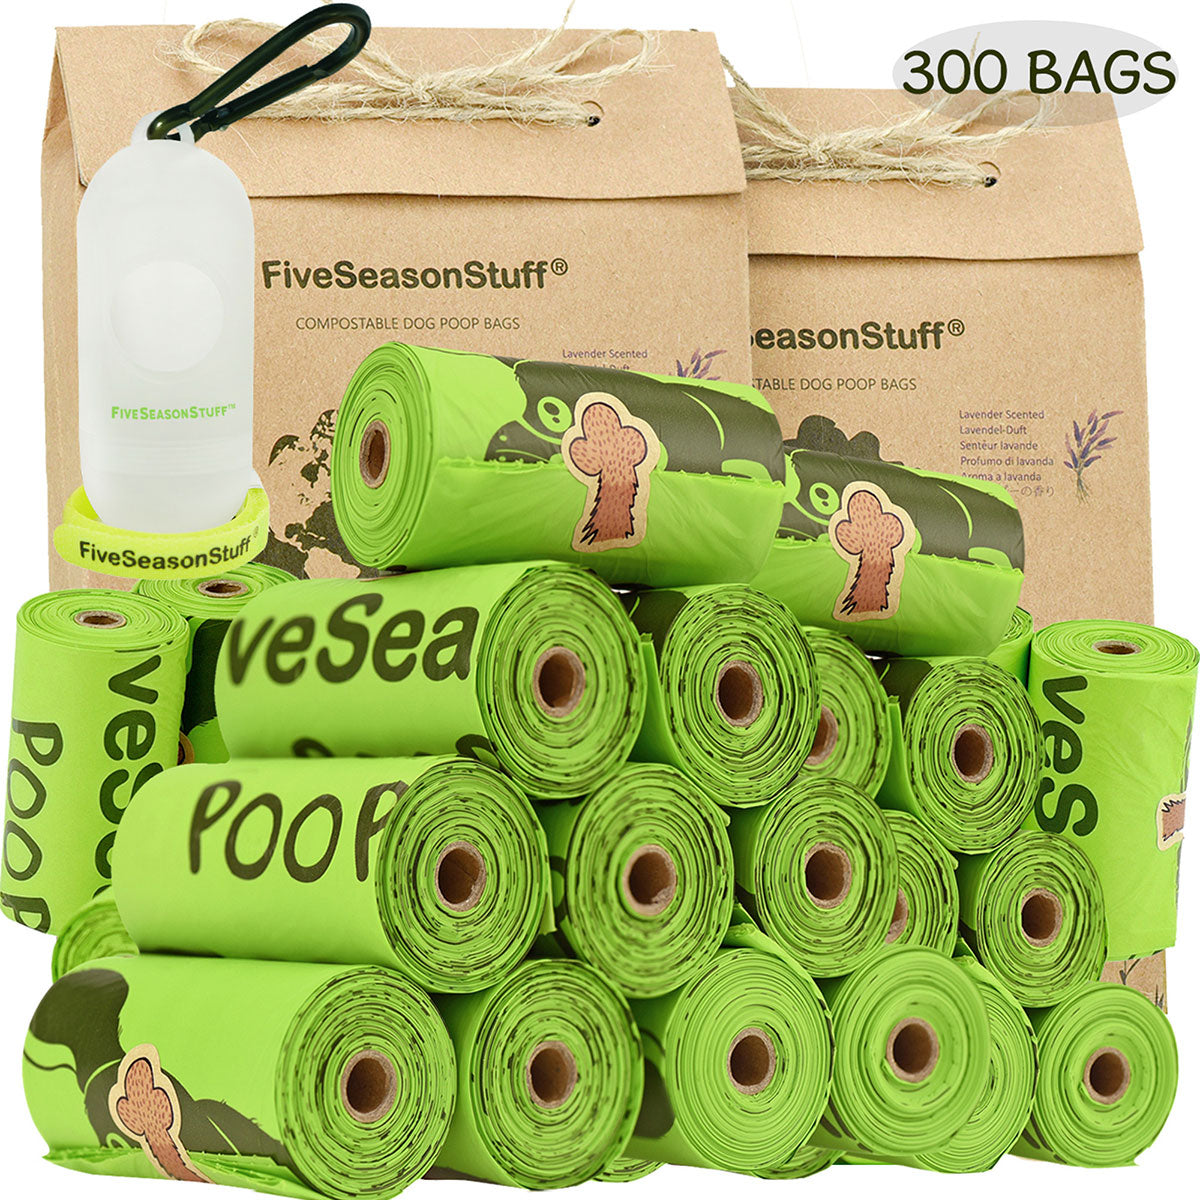 FiveSeasonStuff 300 Bags and Lease Holder 100% Biodegradable & Compostable Leak Proof Dog Poop Bag (Lavender-Scented)